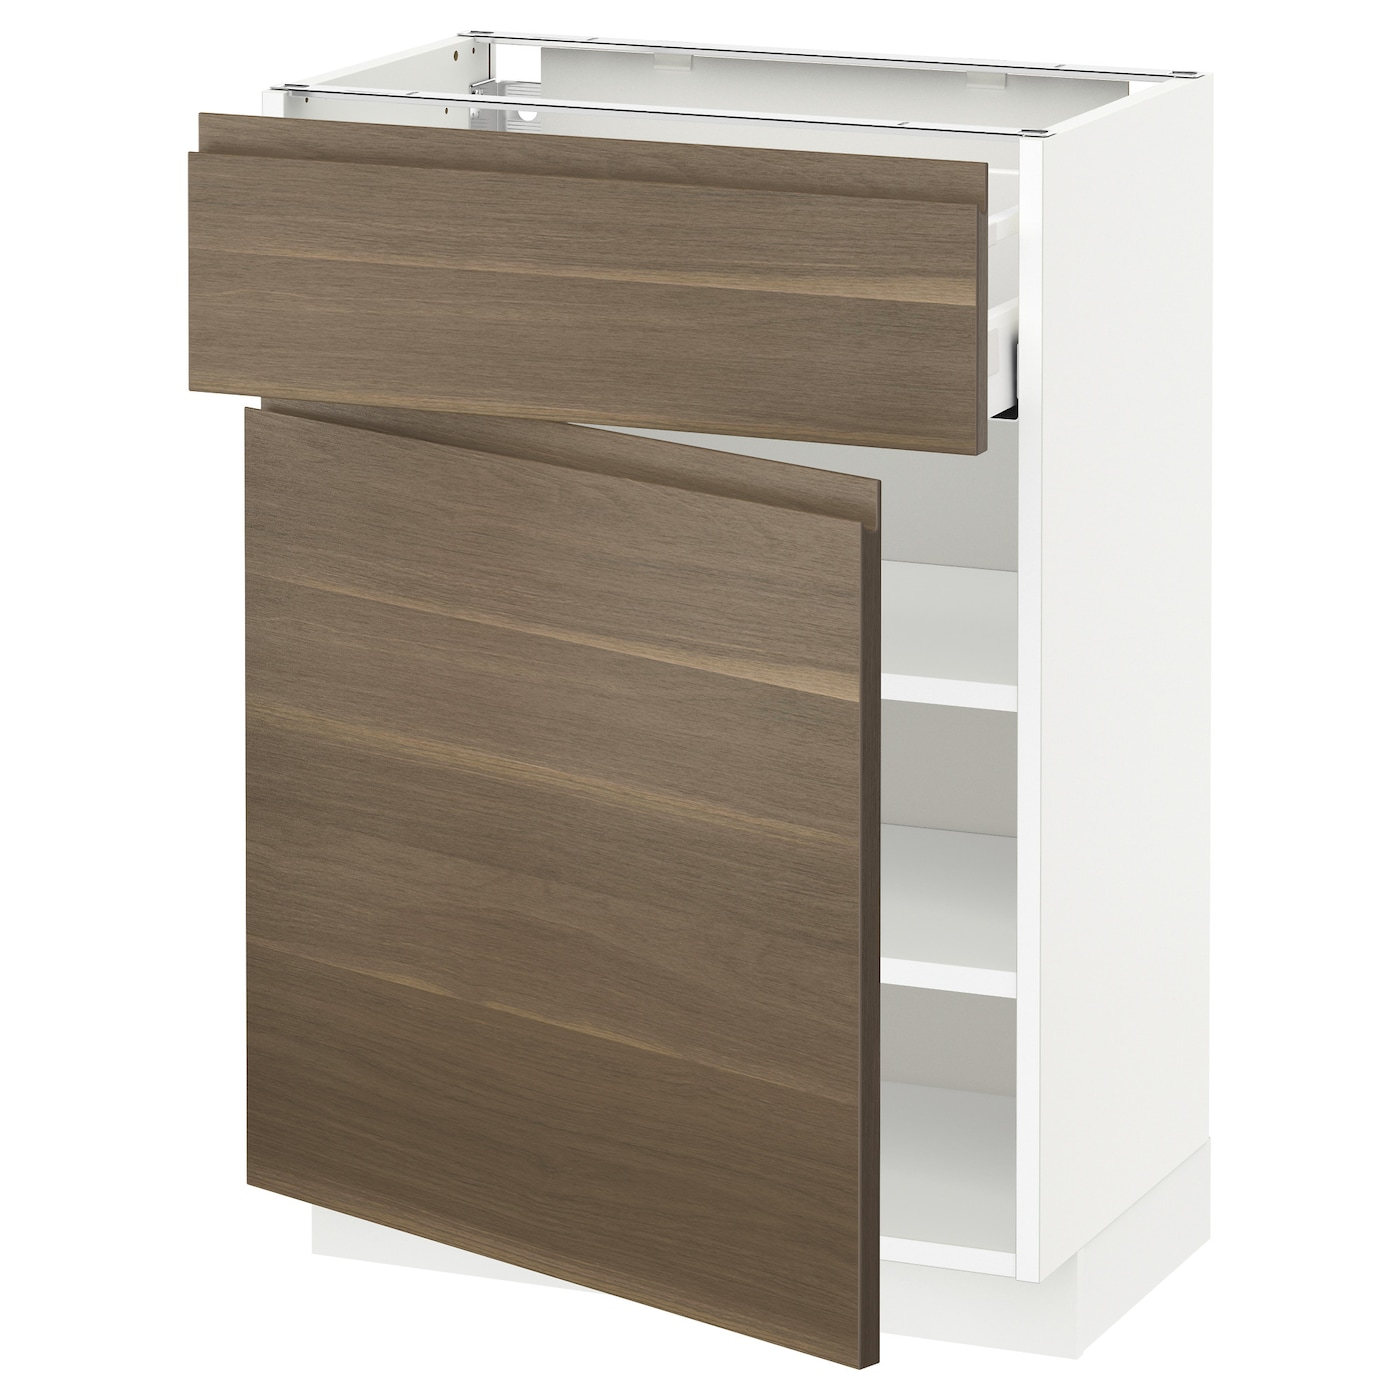 Walnut Mixed Material Ikea Kitchen: METOD/MAXIMERA Base Cabinet With Drawer/door White/voxtorp